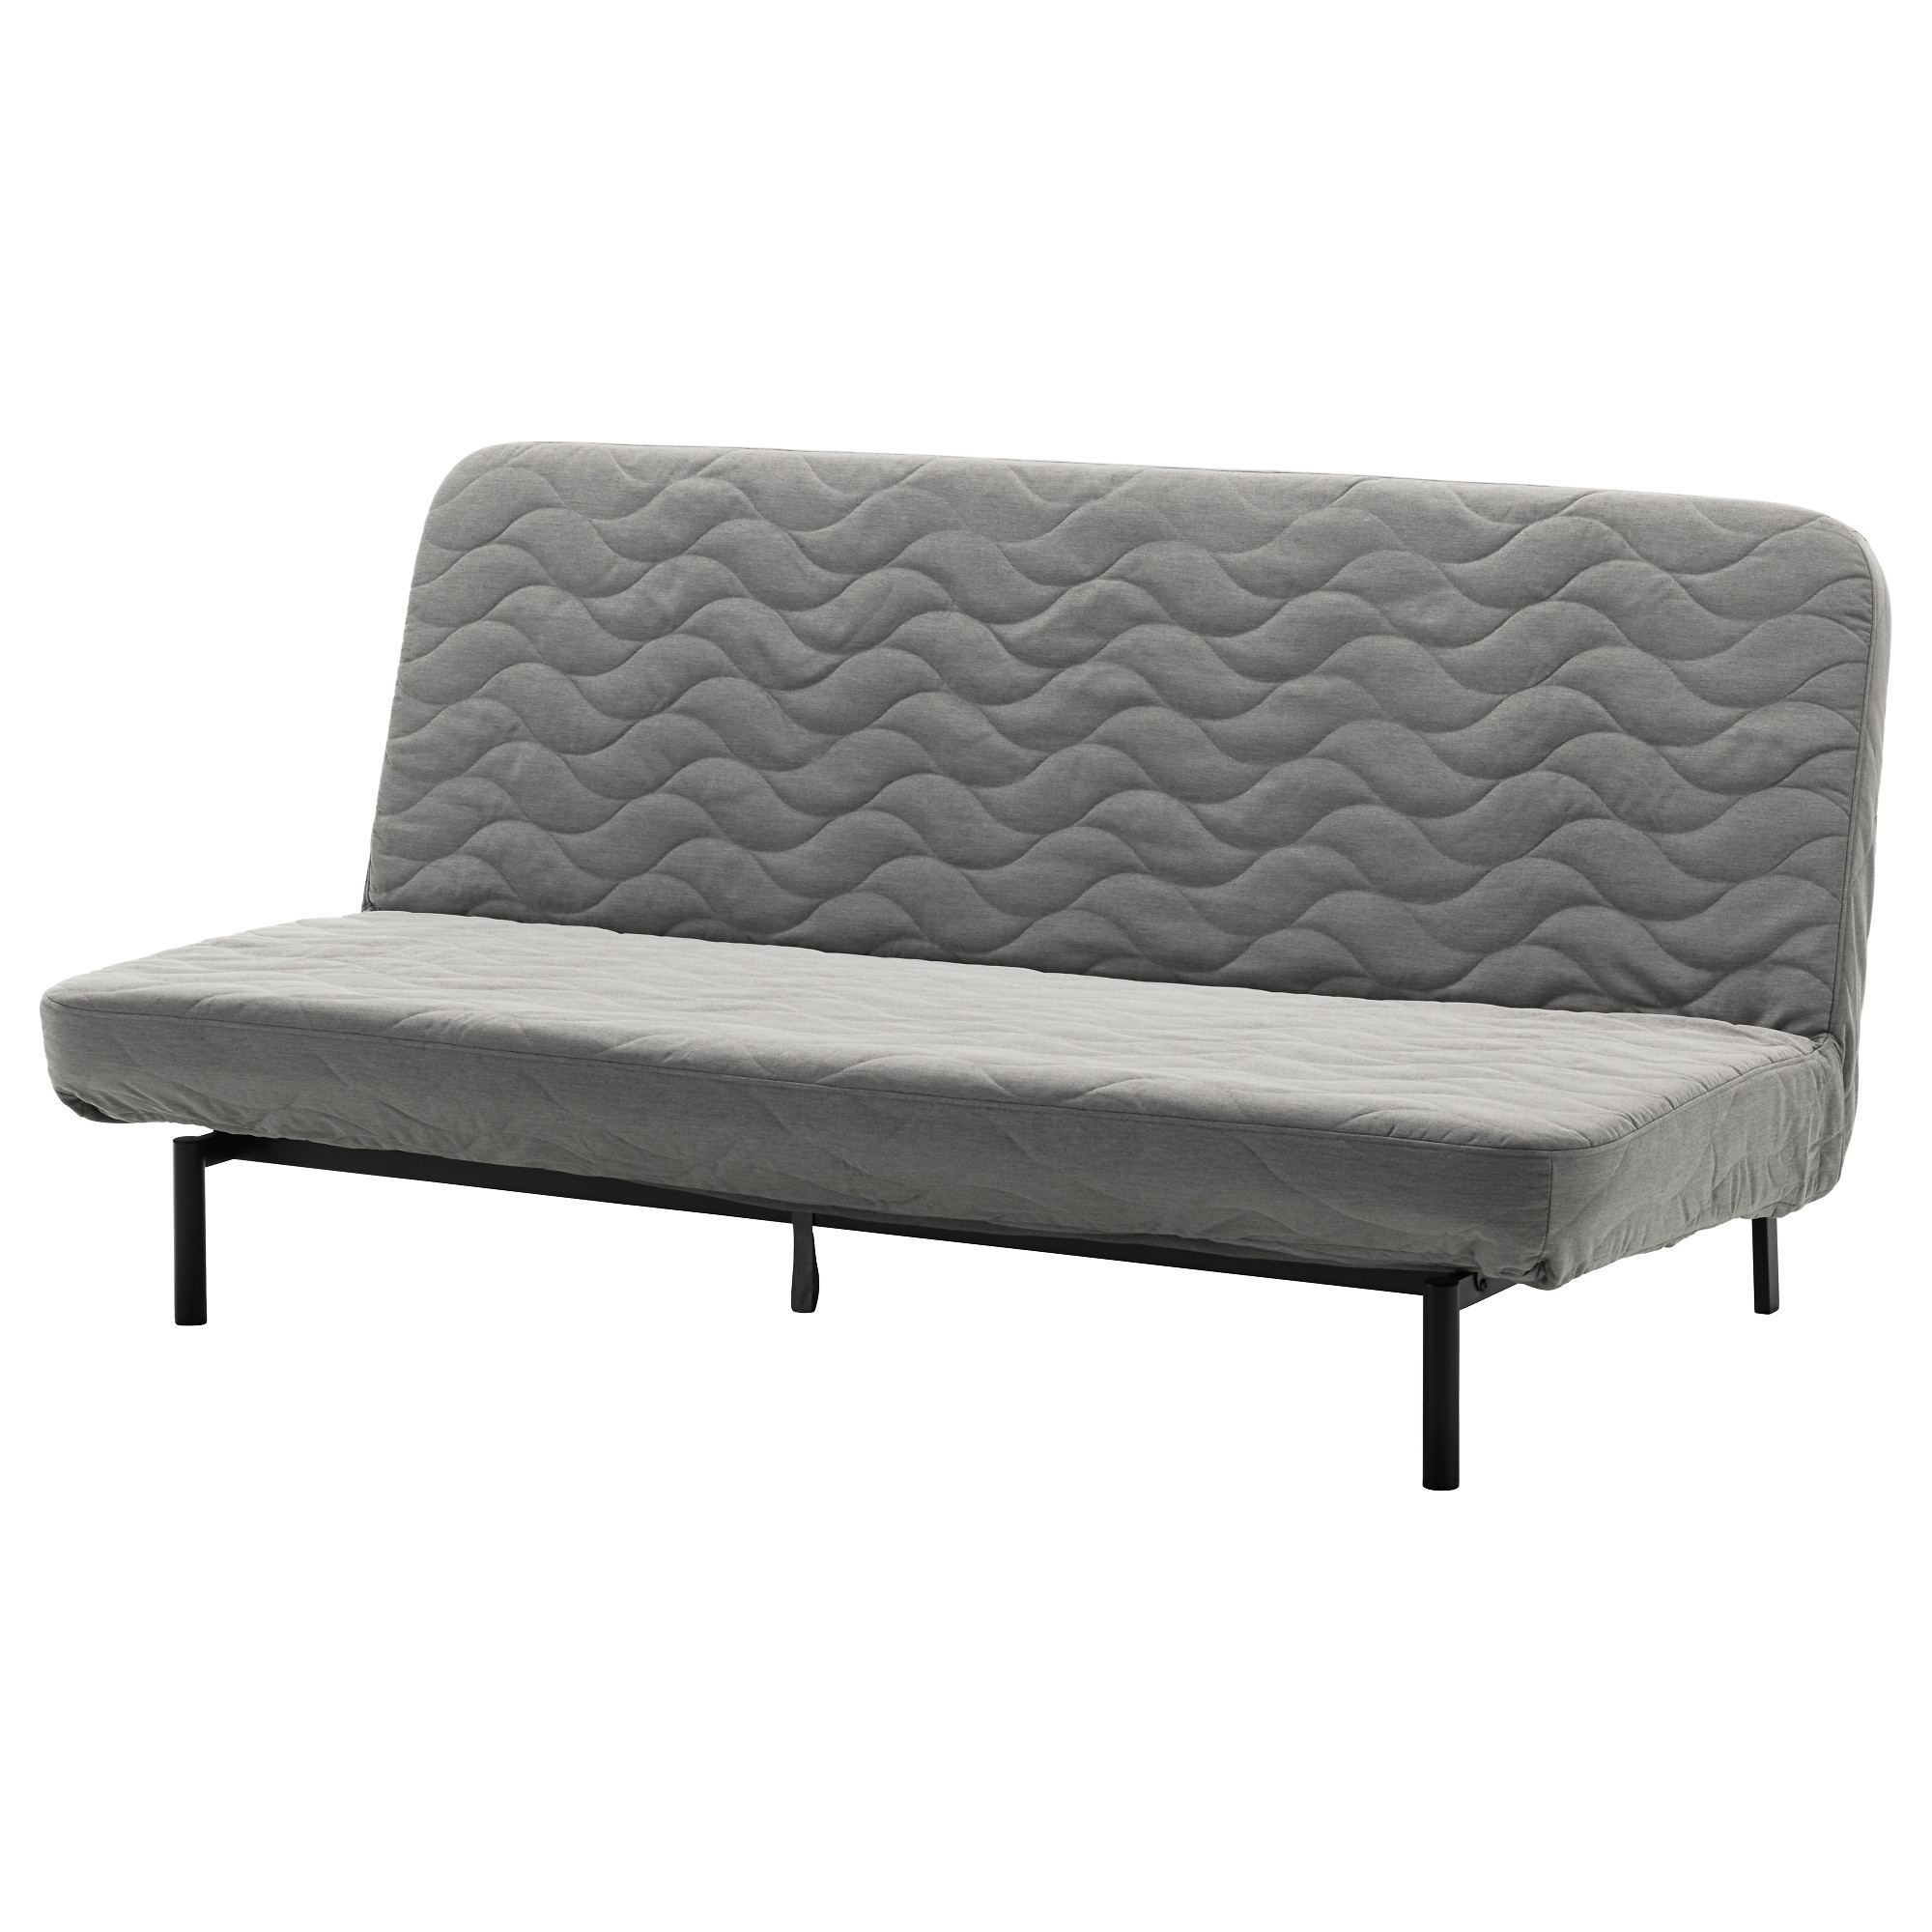 Nyhamn Sleeper Sofa With Pocket Spring Mattress Knisa Gray Beige Width 78